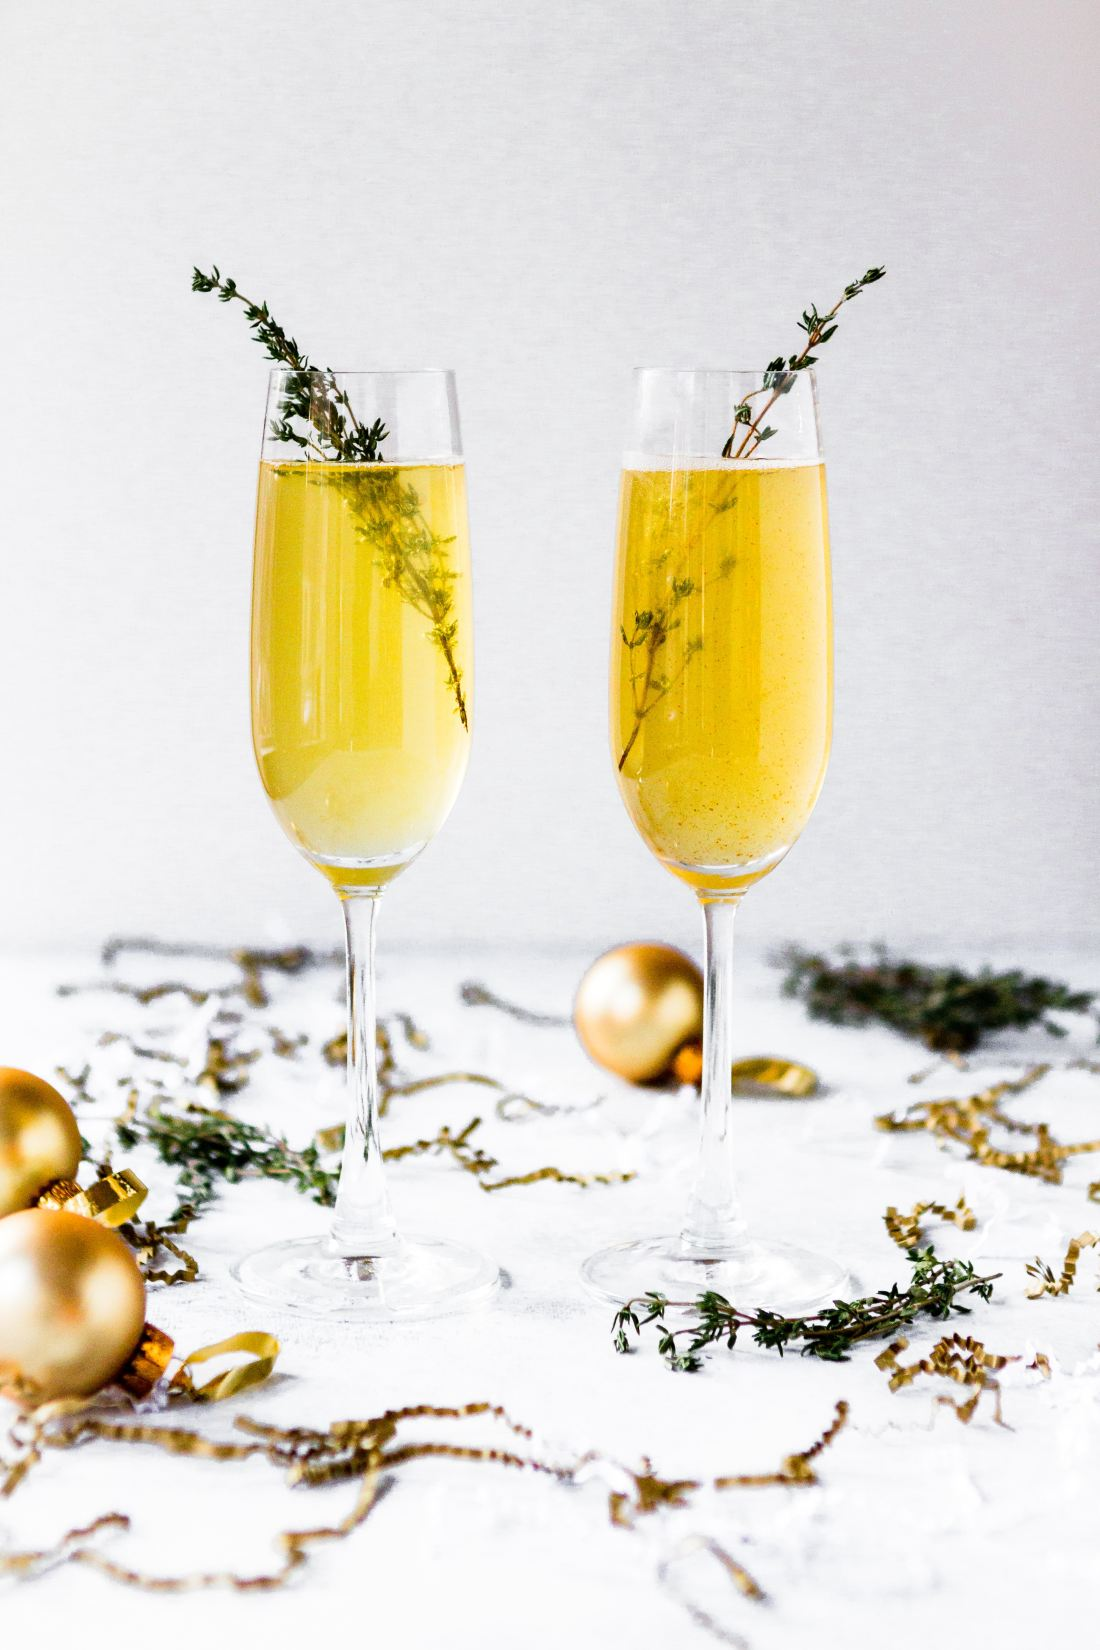 It's almost that time again- New Year's! I know it isn't Christmas yet, but it's best to already think about New Year's Eve, especially if you are going to have a night on the town! #sharethelex #visitlex #lexingtonky #lexingtonkentucky #newyears #newyearseve #party #celebration #travelky #thingstodo